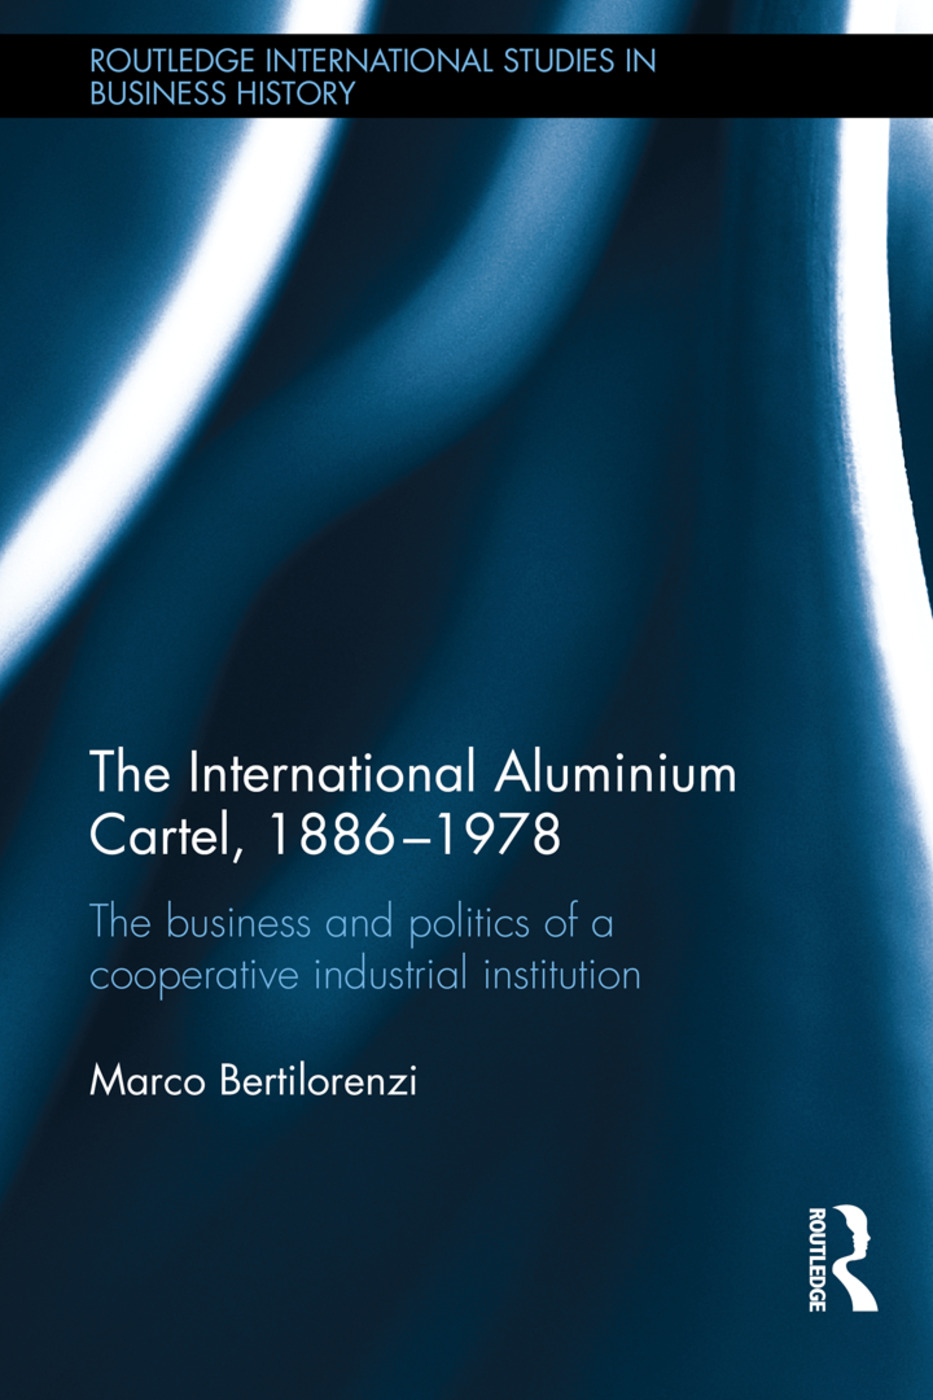 The International Aluminium Cartel: The Business and Politics of a Cooperative Industrial Institution (1886-1978) book cover